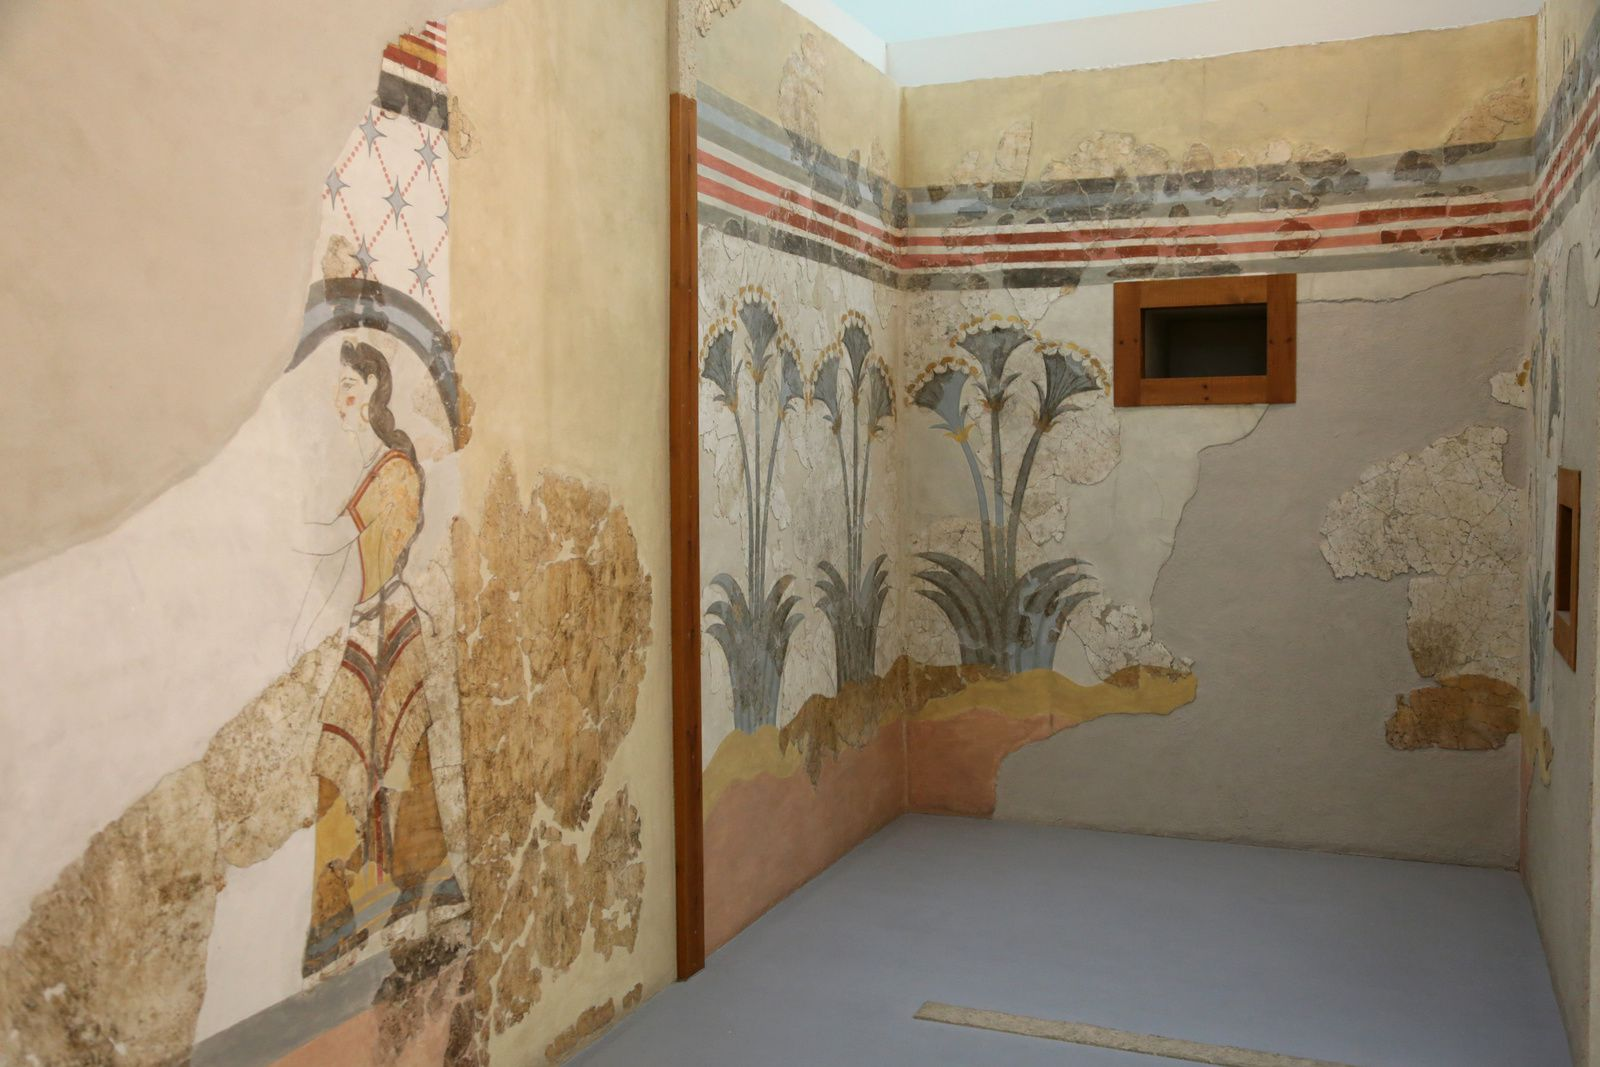 Akrotiri - frescoes of the House of the Ladies - Museum of Prehistory - photo © Bernard Duyck 09.2019